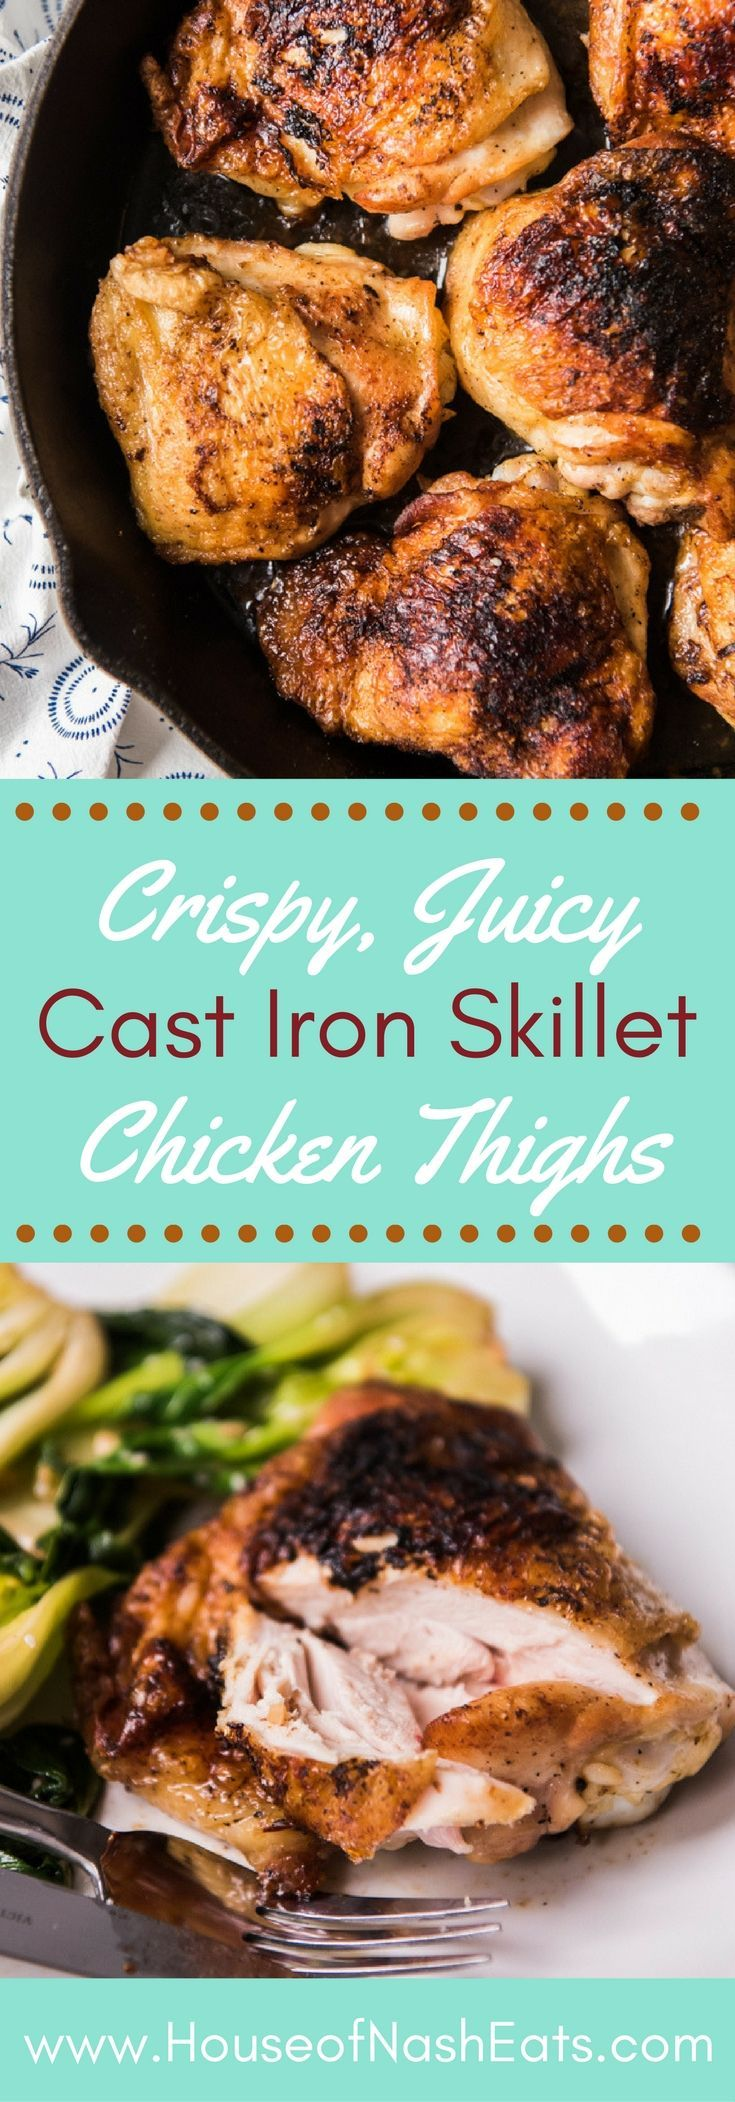 Crispy Cast Iron Skillet Chicken Thighs are always a hit with the family and are a mostly hands-off dinner that is ready in less than 30 minutes! Better for you than classic fried chicken but still with delicious crispy skin and moist, tender meat that your family will love and that pairs perfectly almost any side! #chicken #thighs #fried #castiron #crispy #skillet #whole30